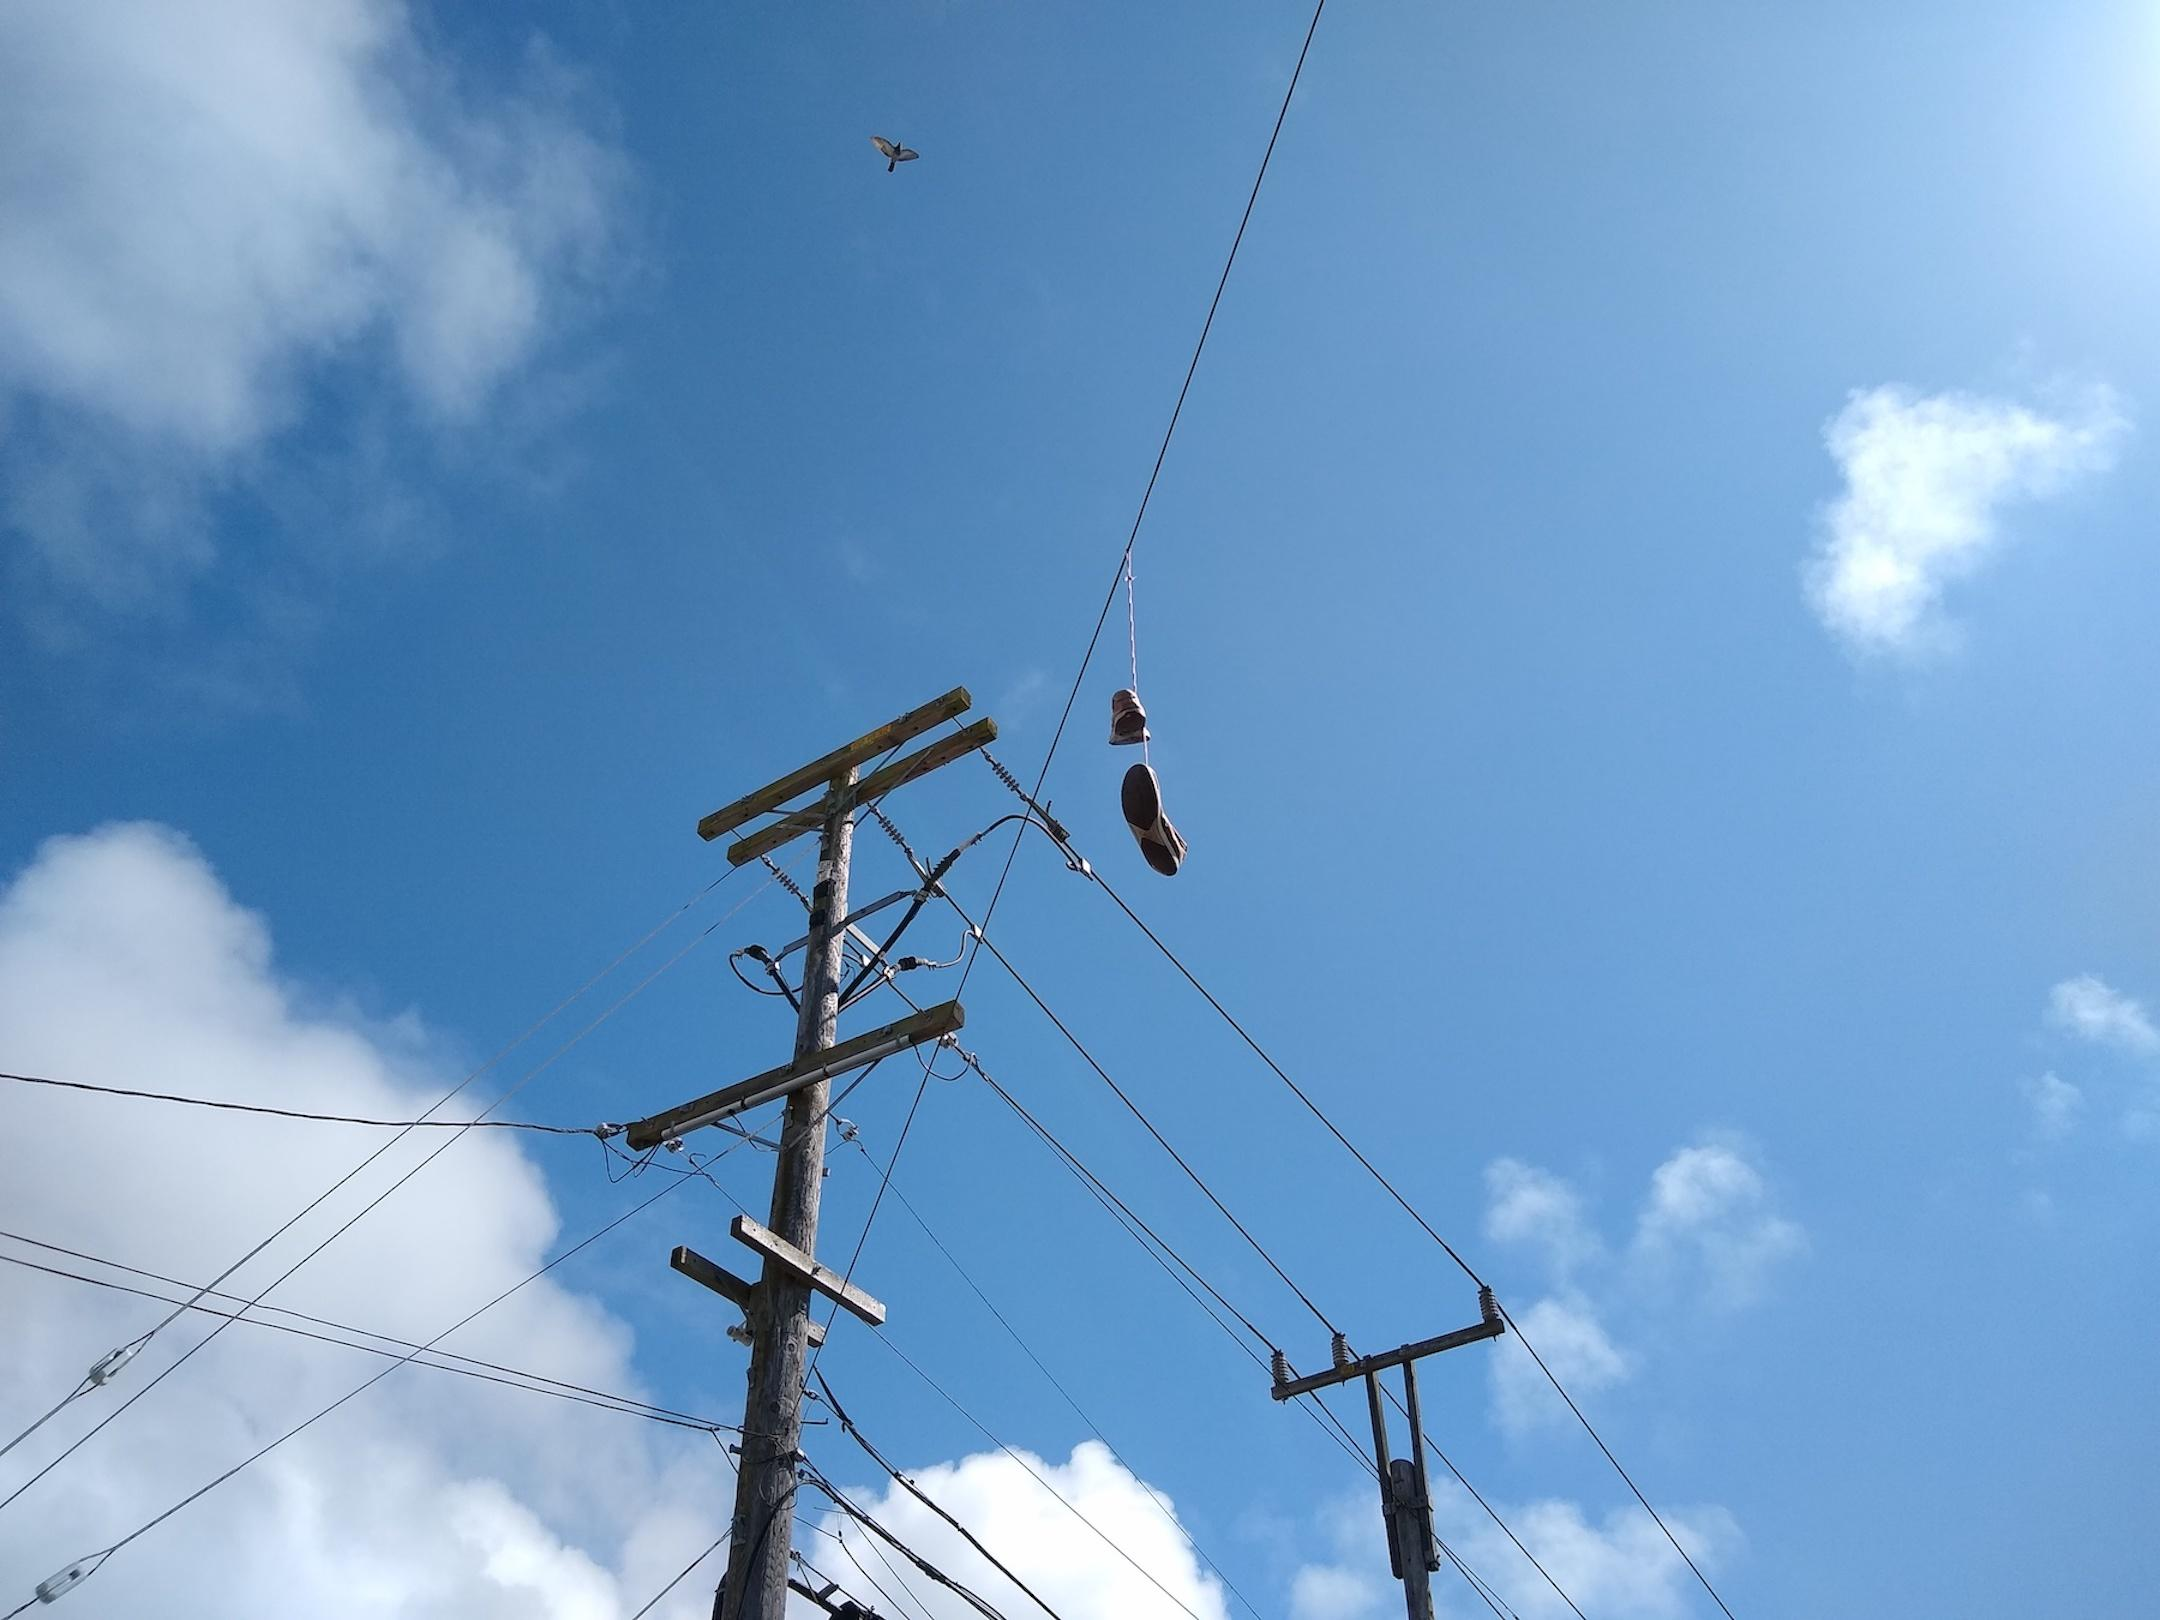 small-good-photo-telephone-line-with-shoes